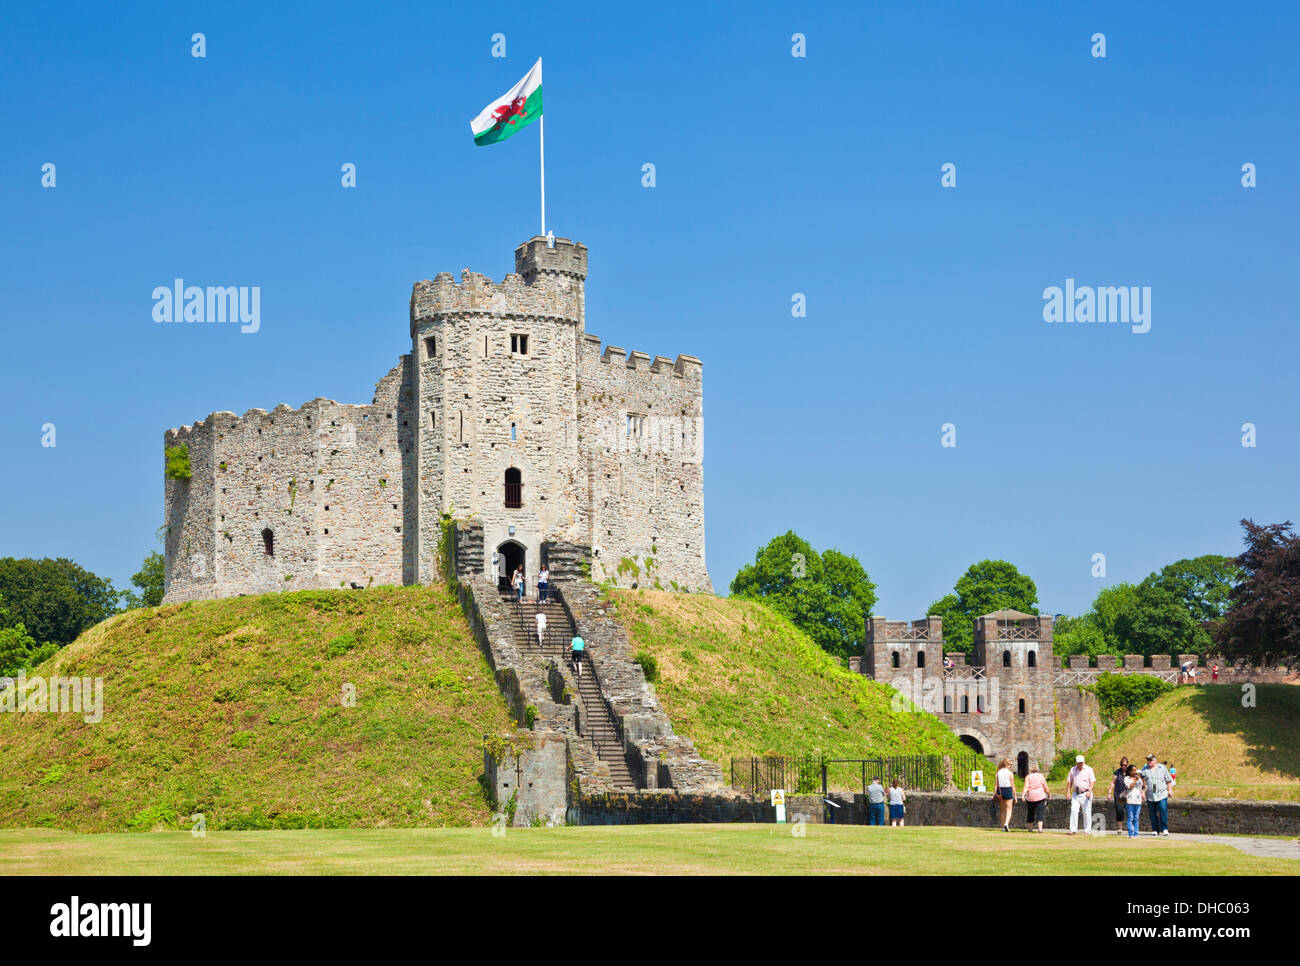 Dans l'enceinte du château de Cardiff avec le donjon normand battant pavillon gallois Cardiff South Glamorgan Wales UK GB EU Europe Photo Stock